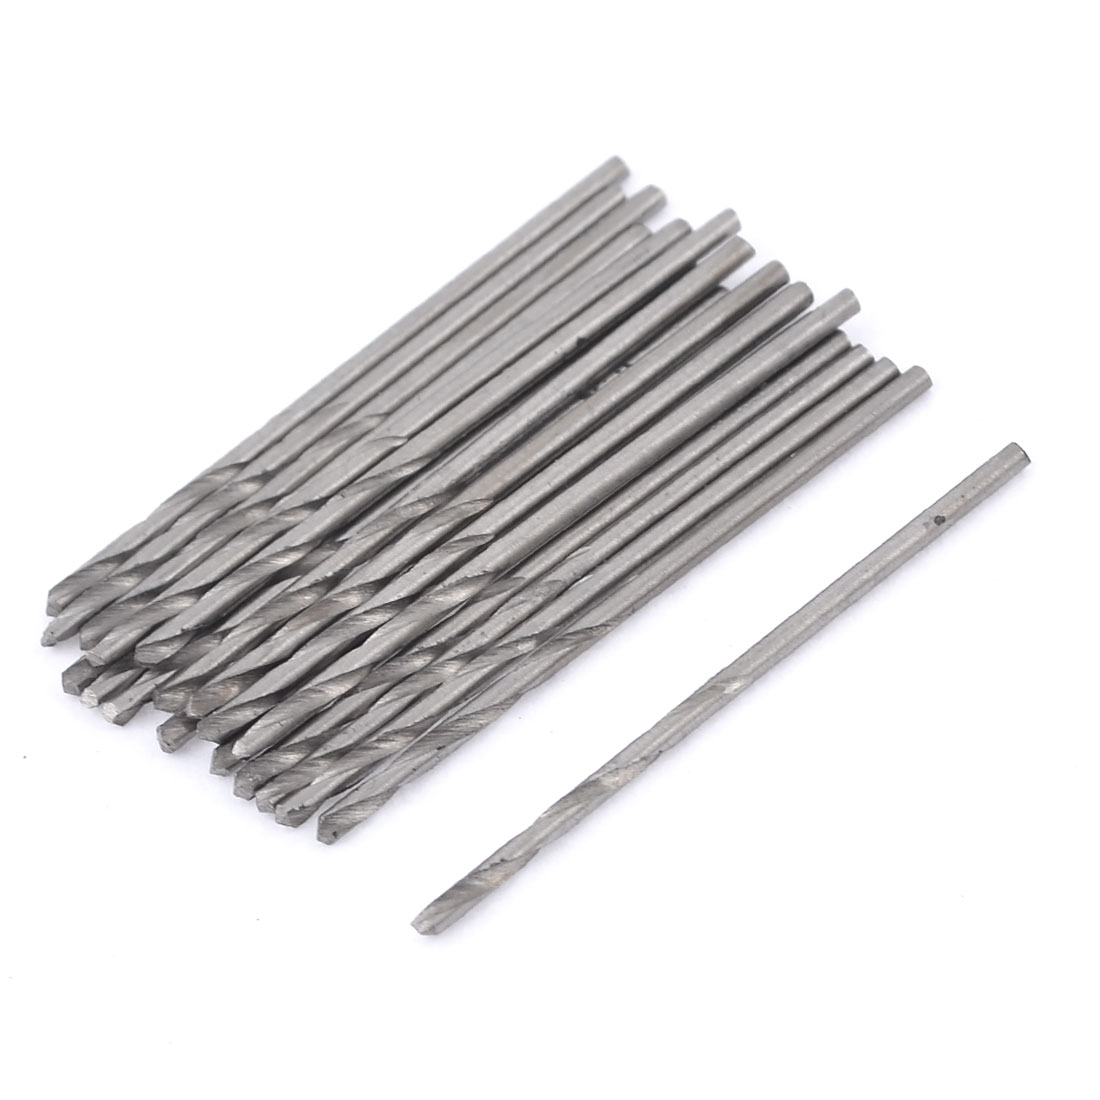 20 Pcs HSS Straight Shank 0.8mm Cutting Diameter Twist Drilling Bit for Electric Drill